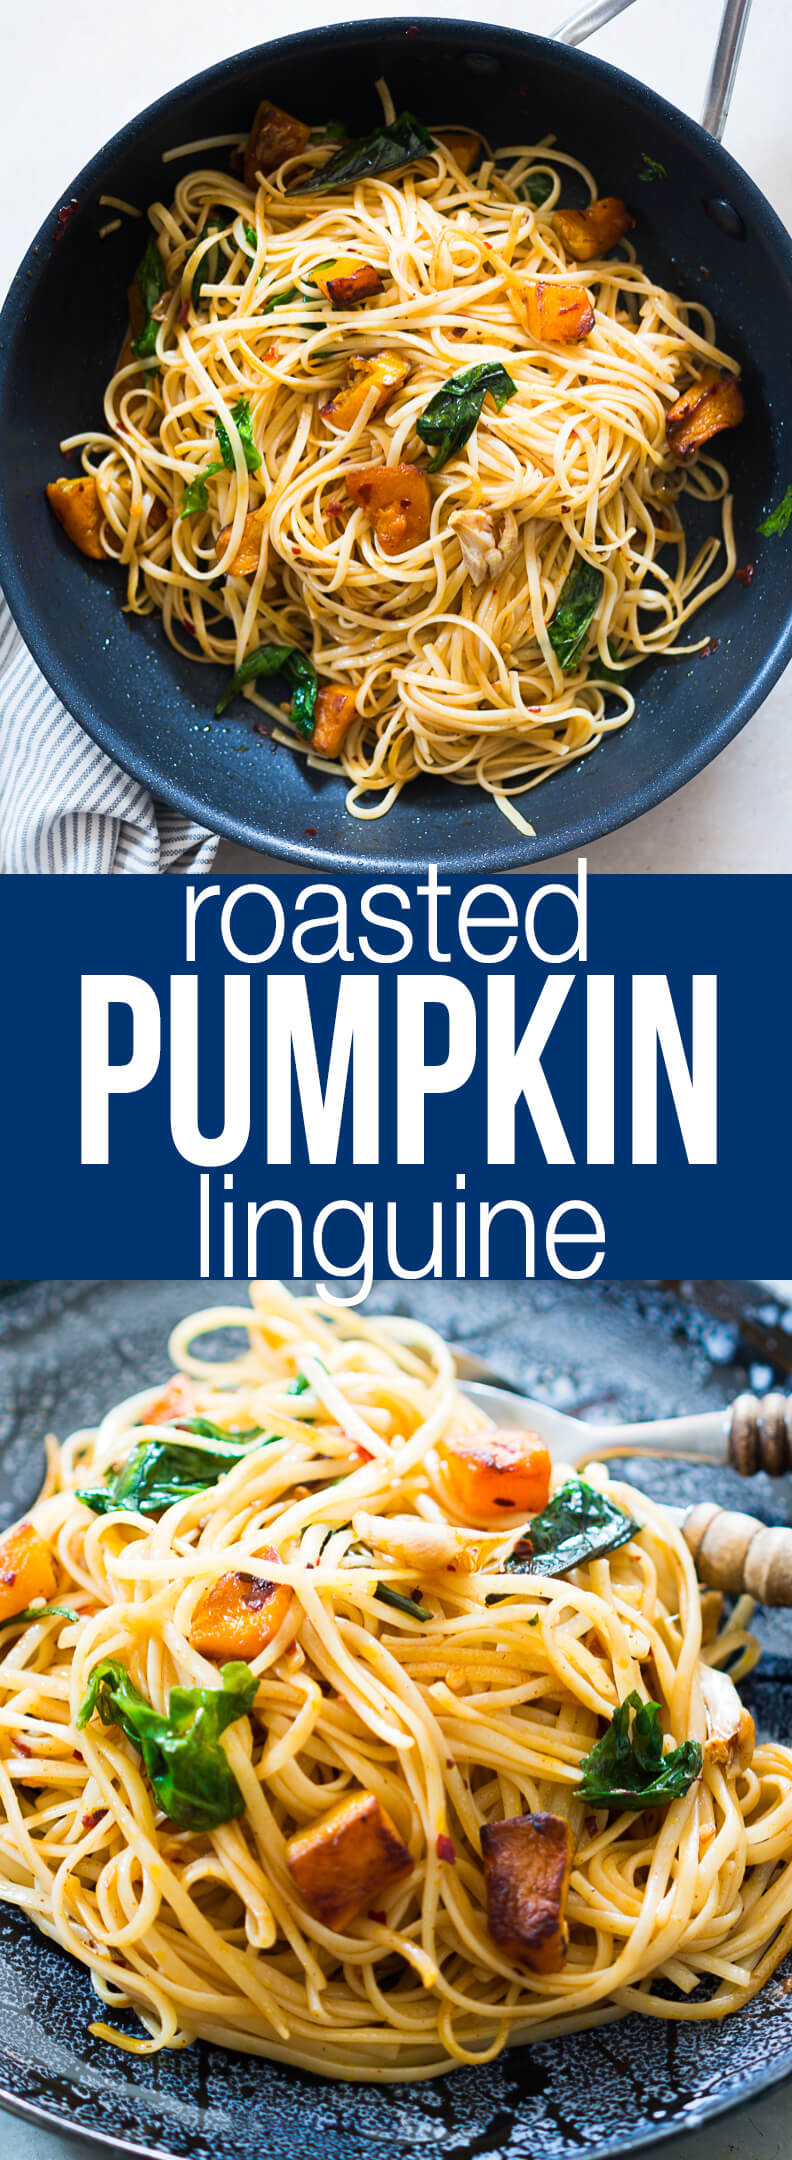 Roasted Pumpkin Spinach Linguine